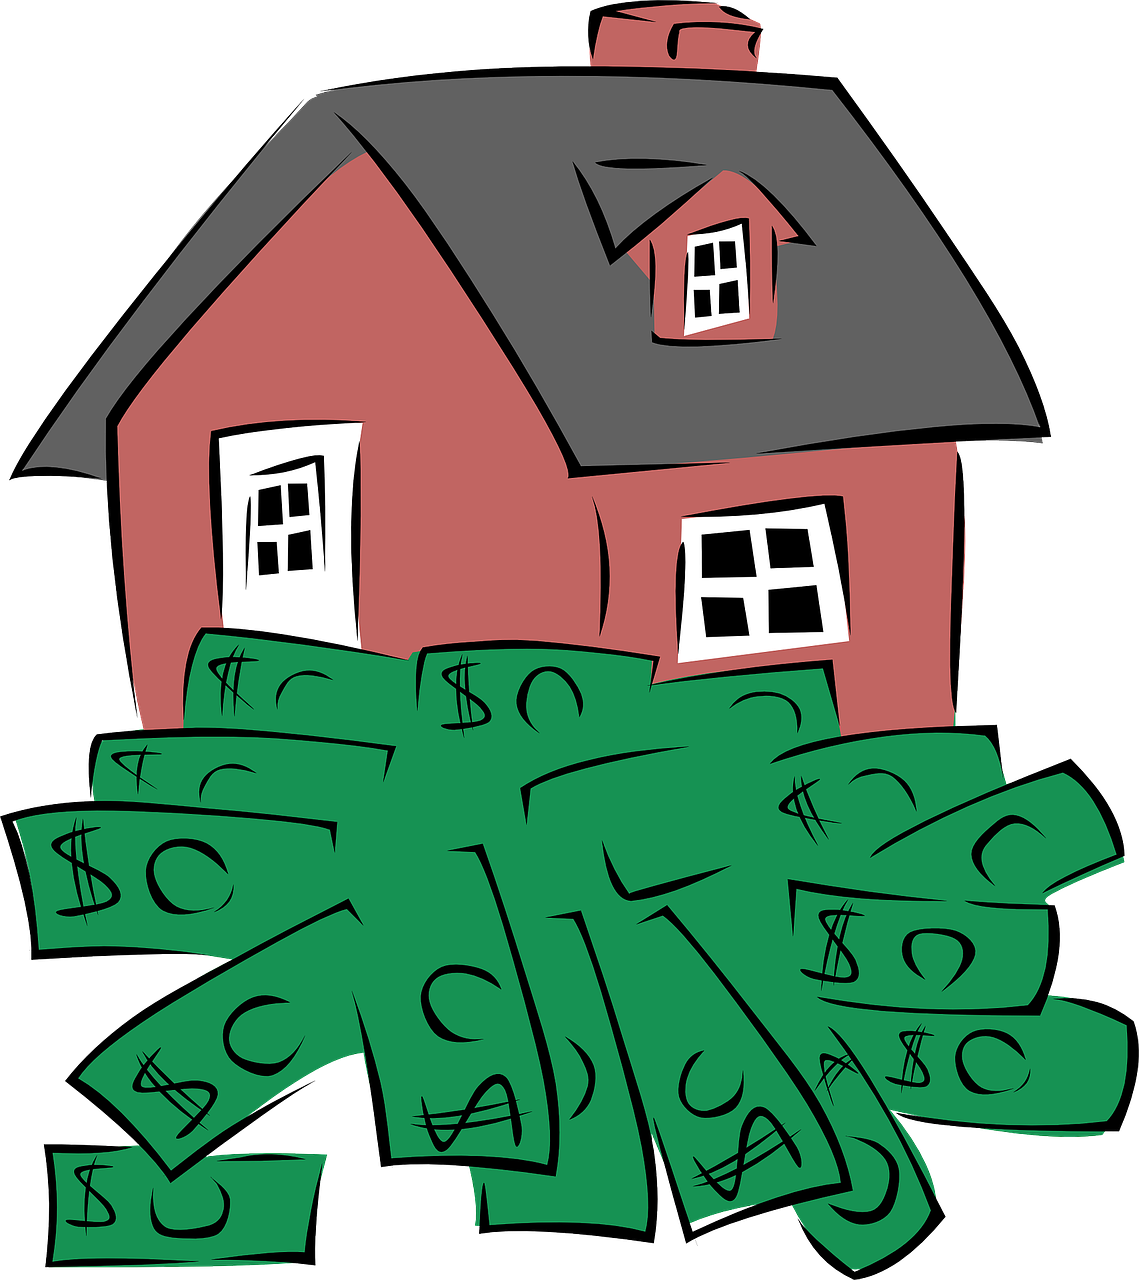 Real estate clipart brokerage. Is autumn the time